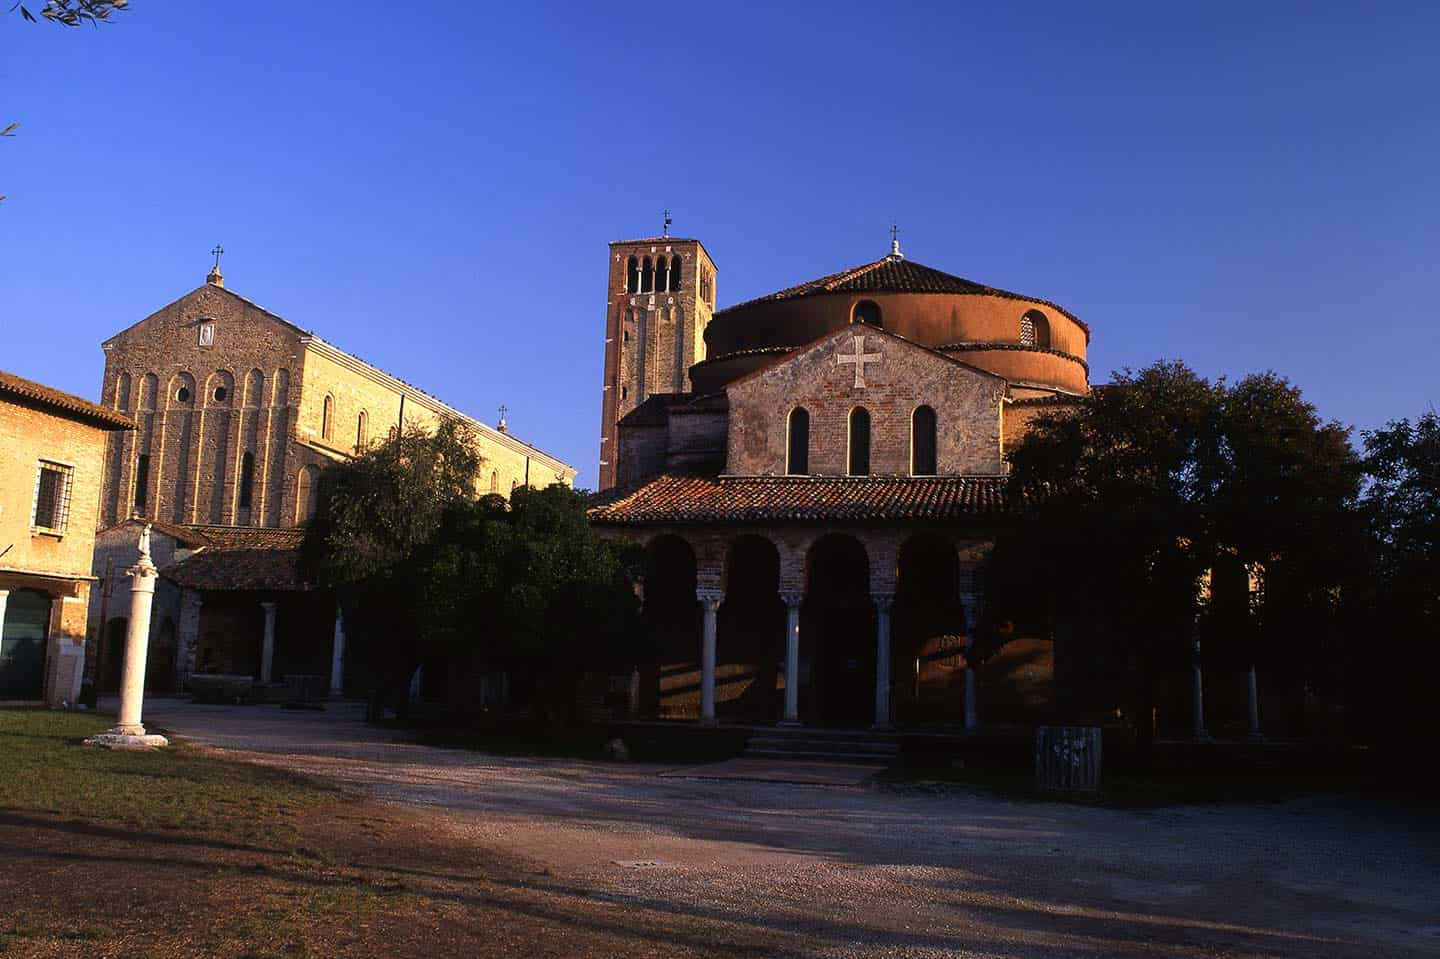 Image of Cathedral and Santa Fosca church on Torcello island, Venice